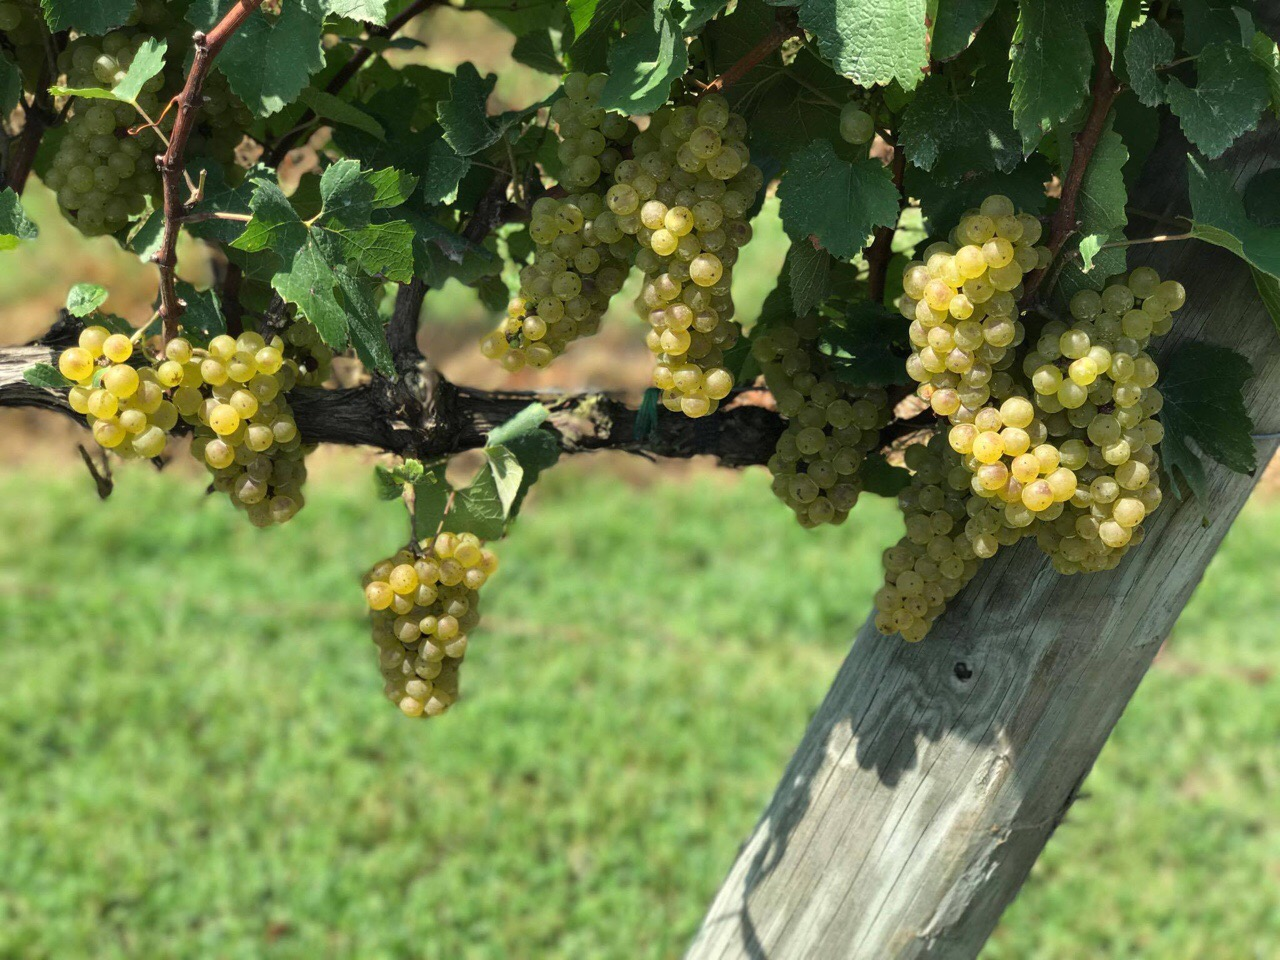 Vermentino grapes courtesy of Piccione Vineyards